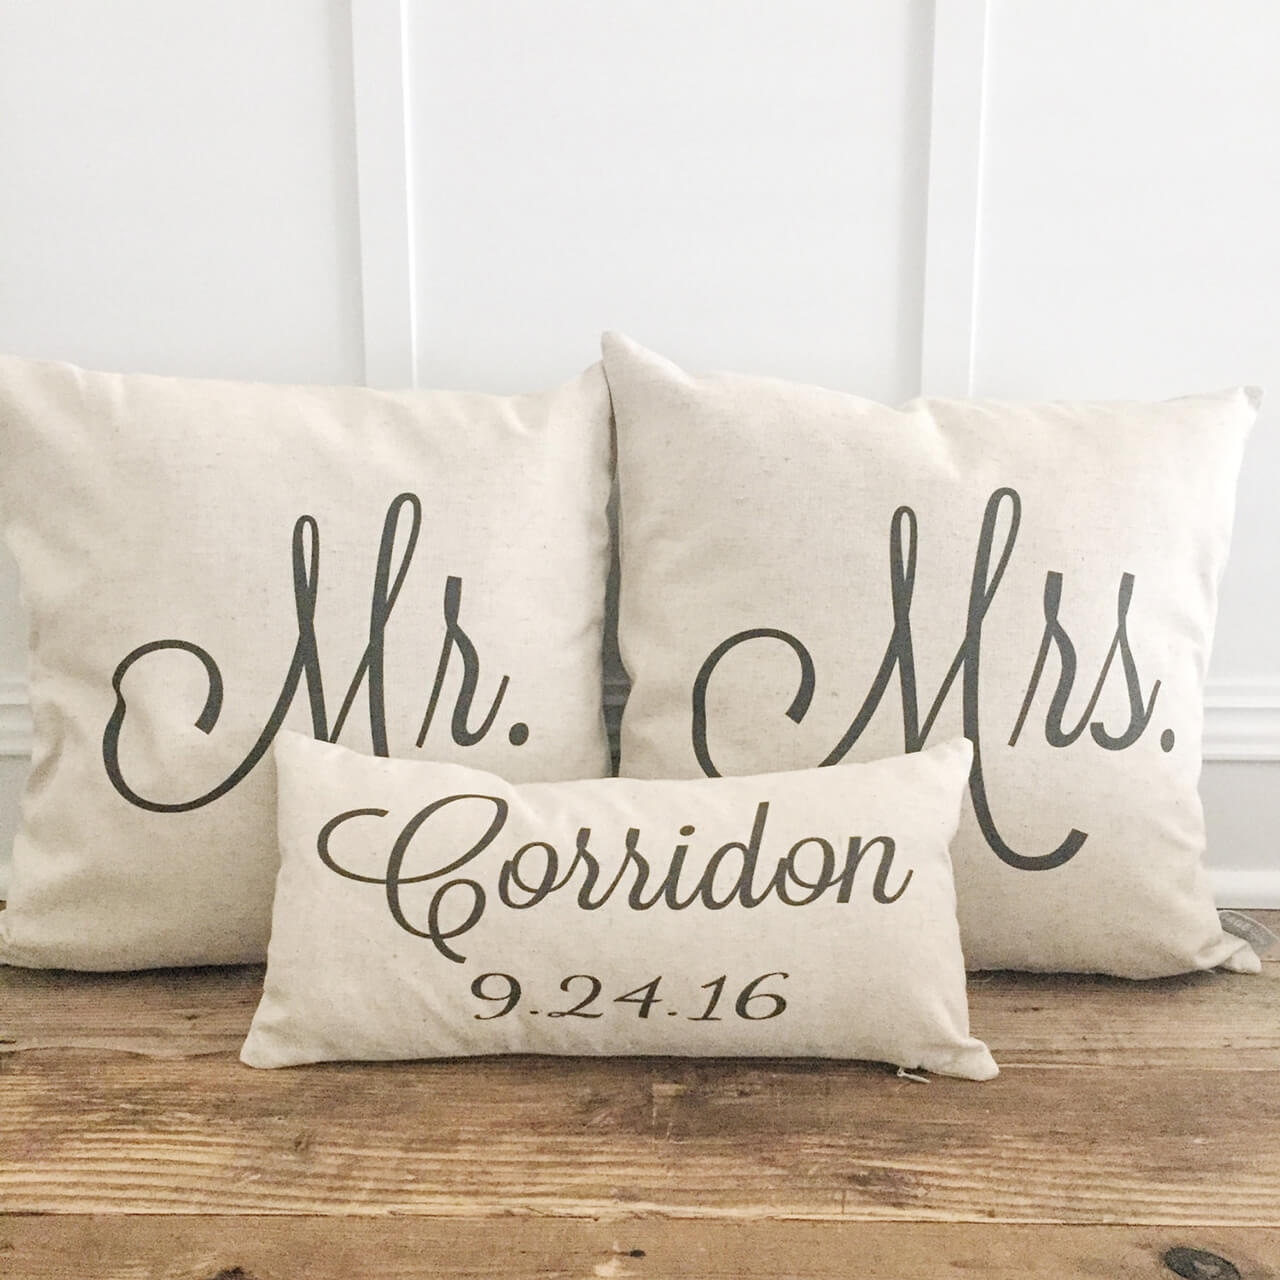 Linen Pillowcases Customized for Mr. & Mrs.